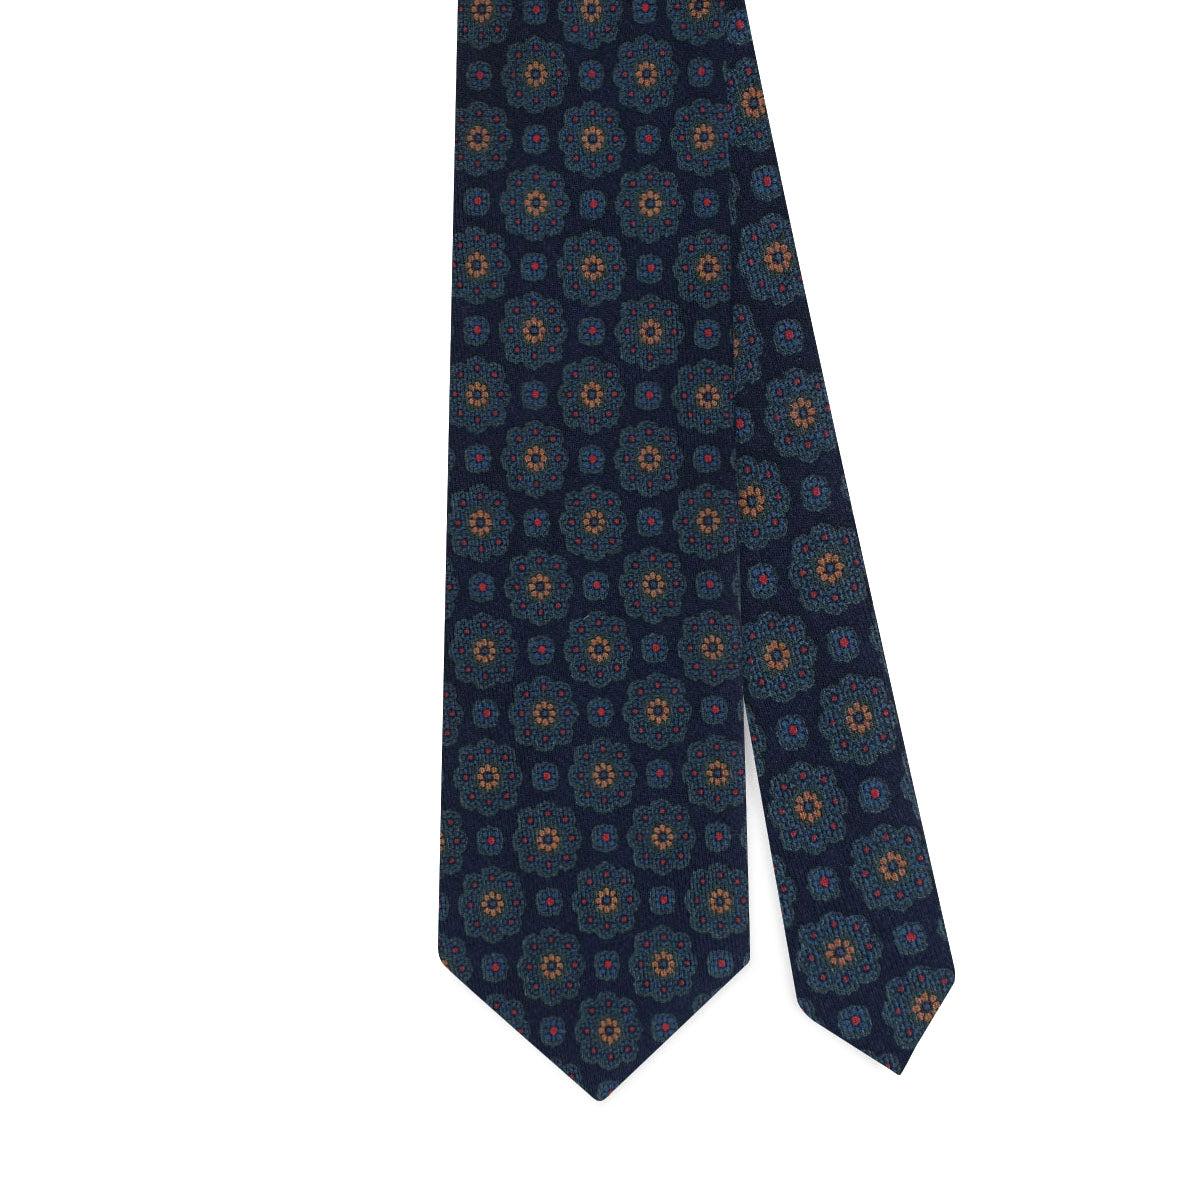 FANTASY FLORAL HANDPRINTED WOOL – NAVY